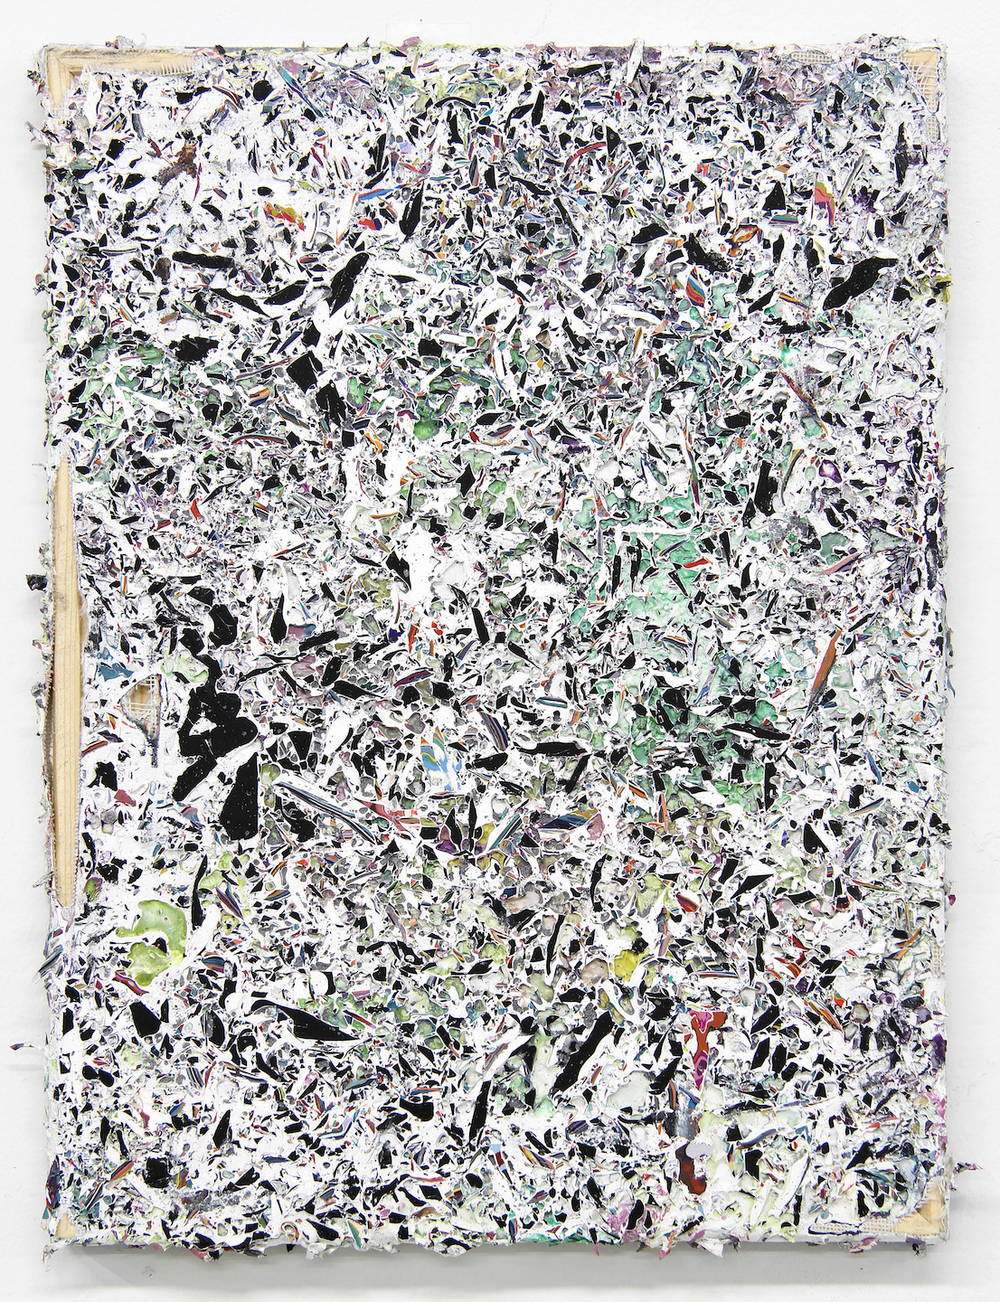 Shredded_Painting_34 copy.jpg